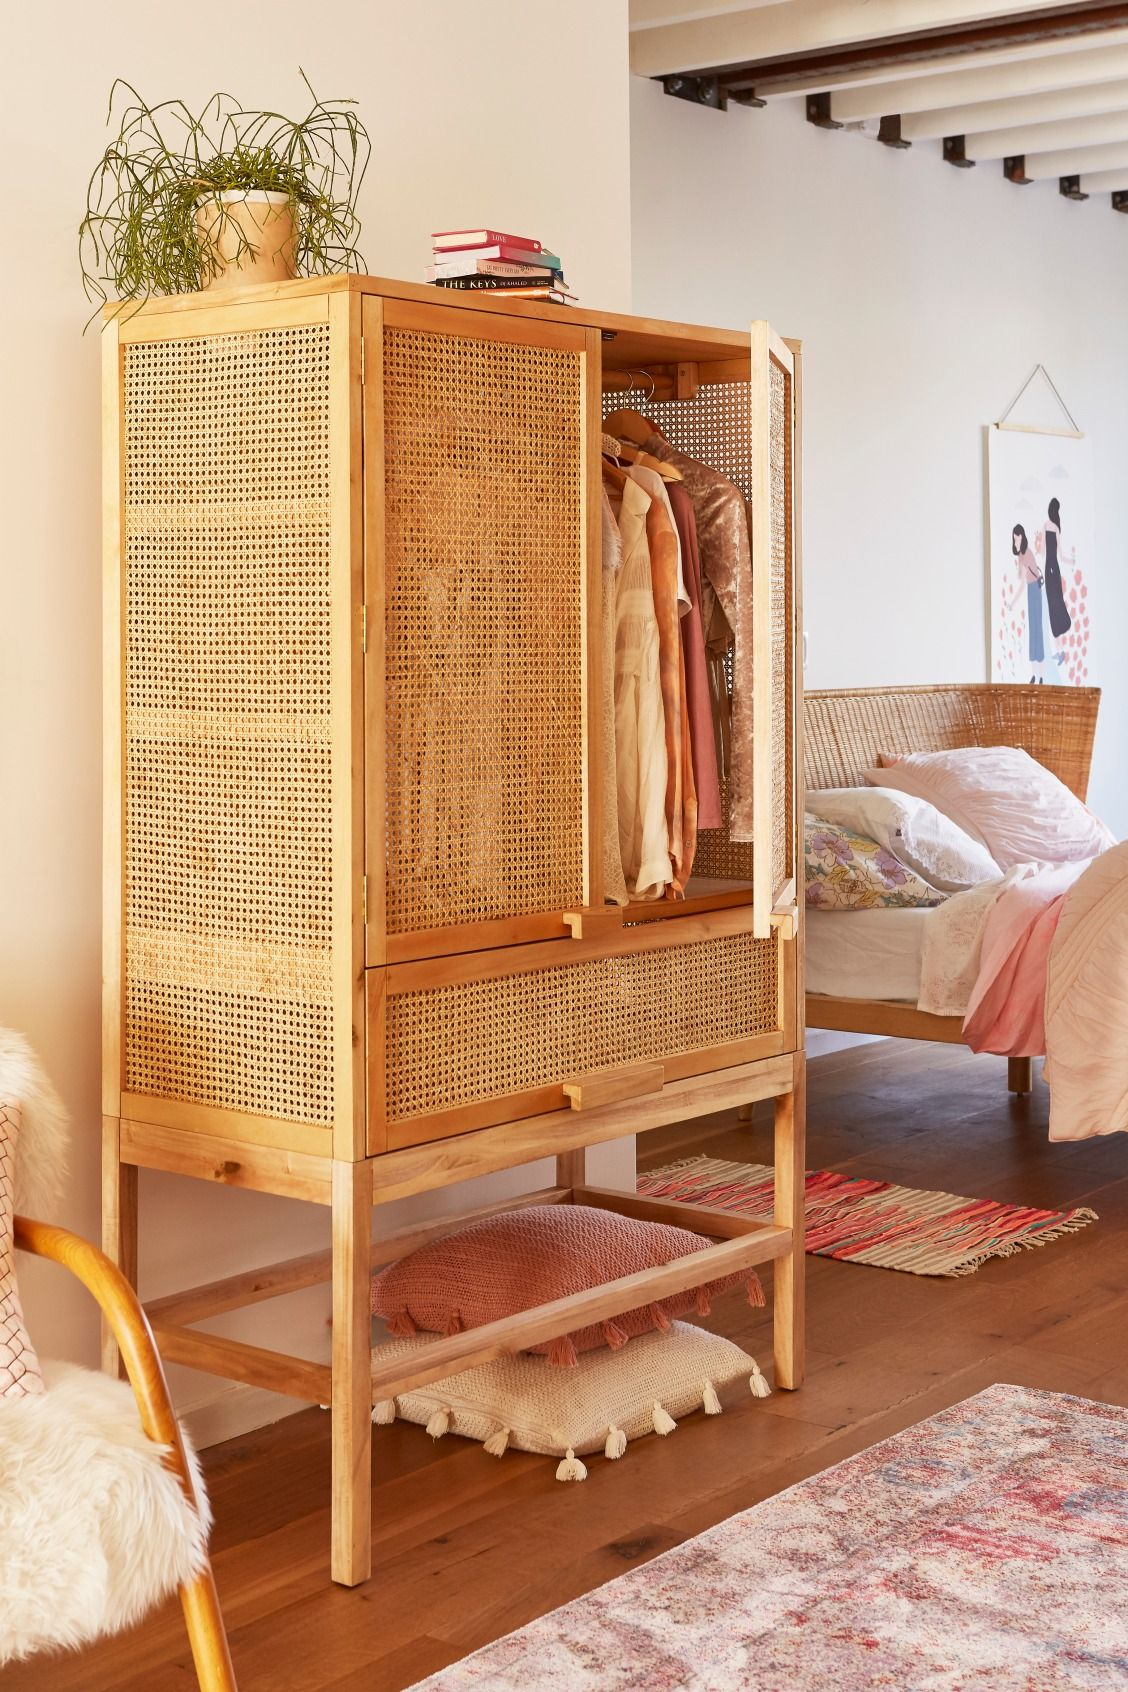 with this cabinet you can create a beachy relaxed style in your